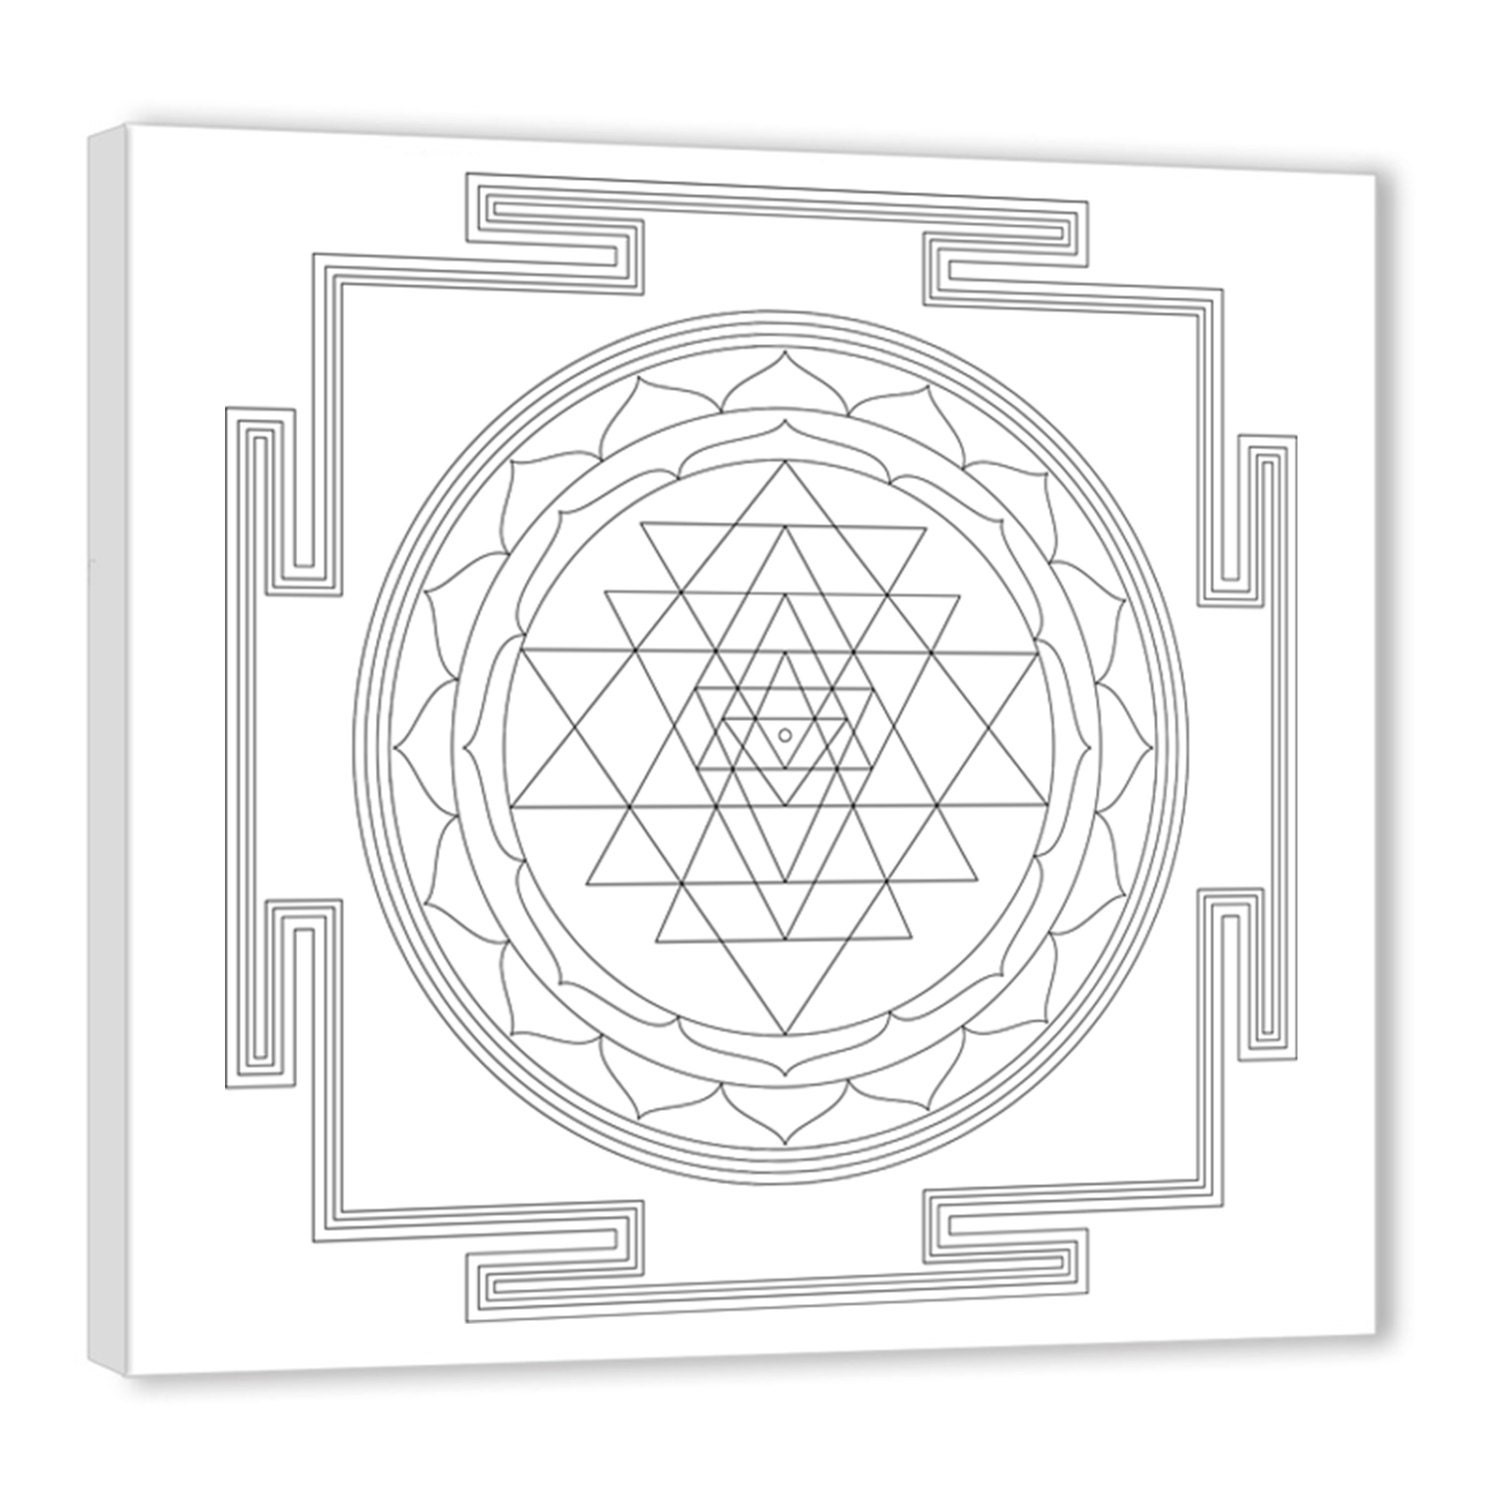 Sri Yantra Art Therapy Coloring Canvas Canvas Coloring on